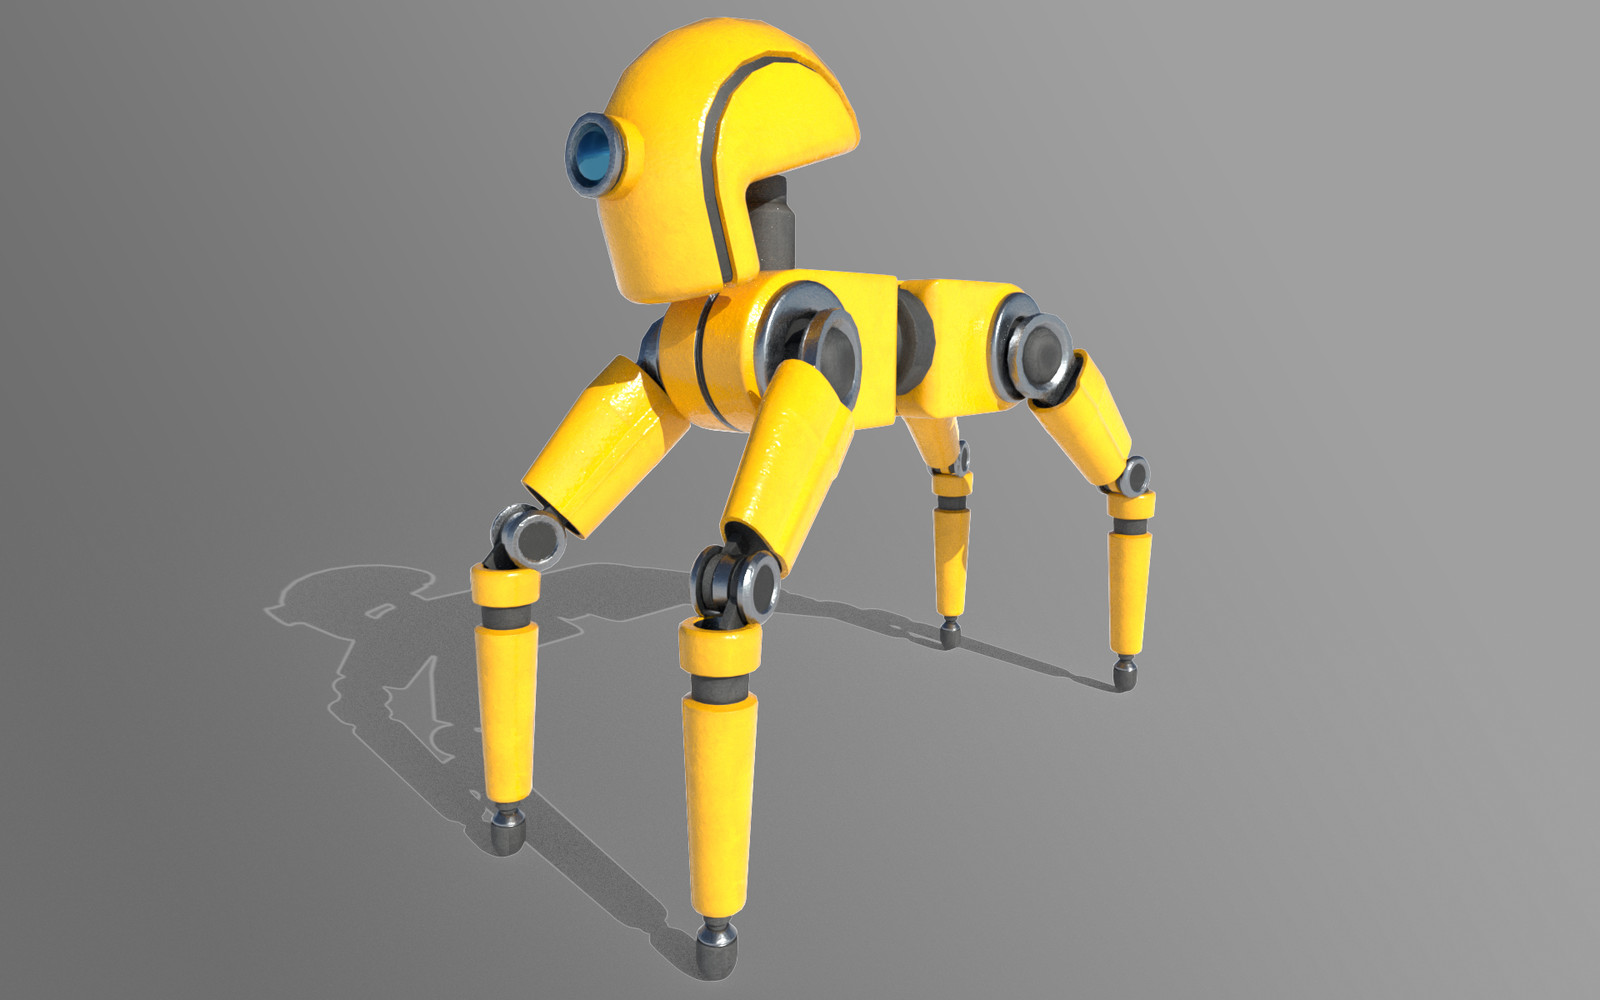 You can also pick and choose what color and materials you want the robot to be.